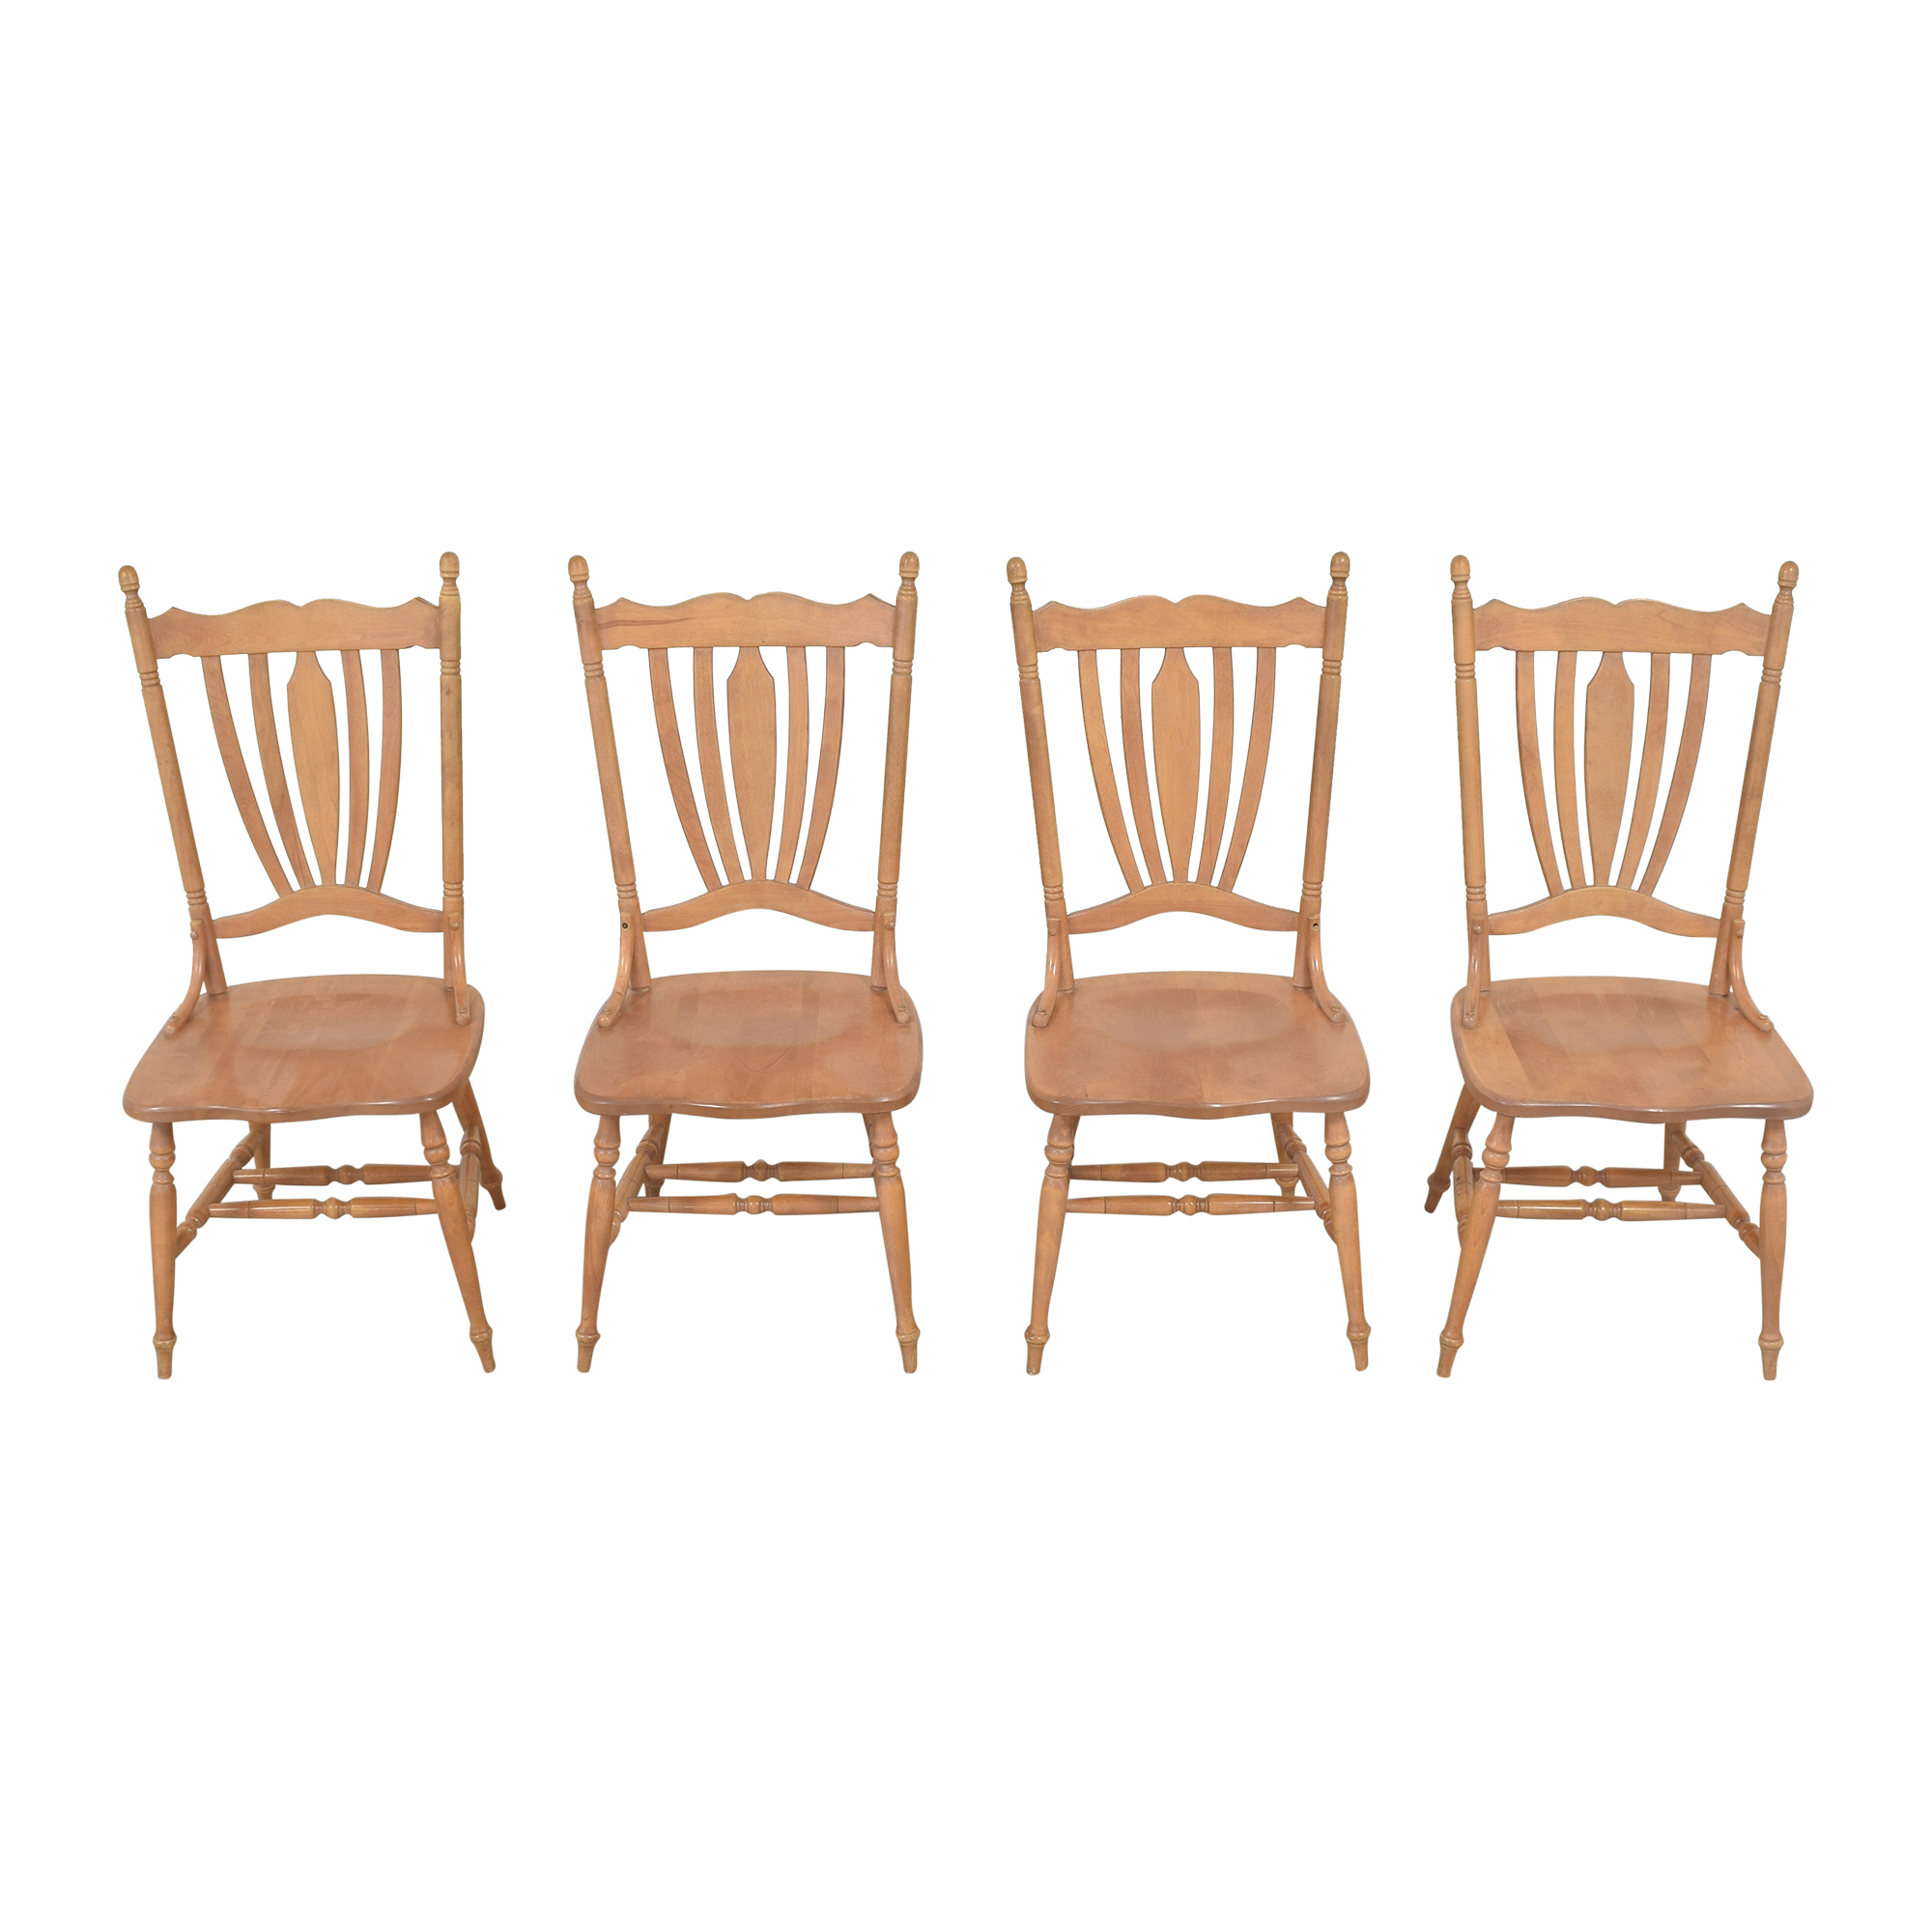 Canadel Canadel Rustic Dining Chairs Chairs